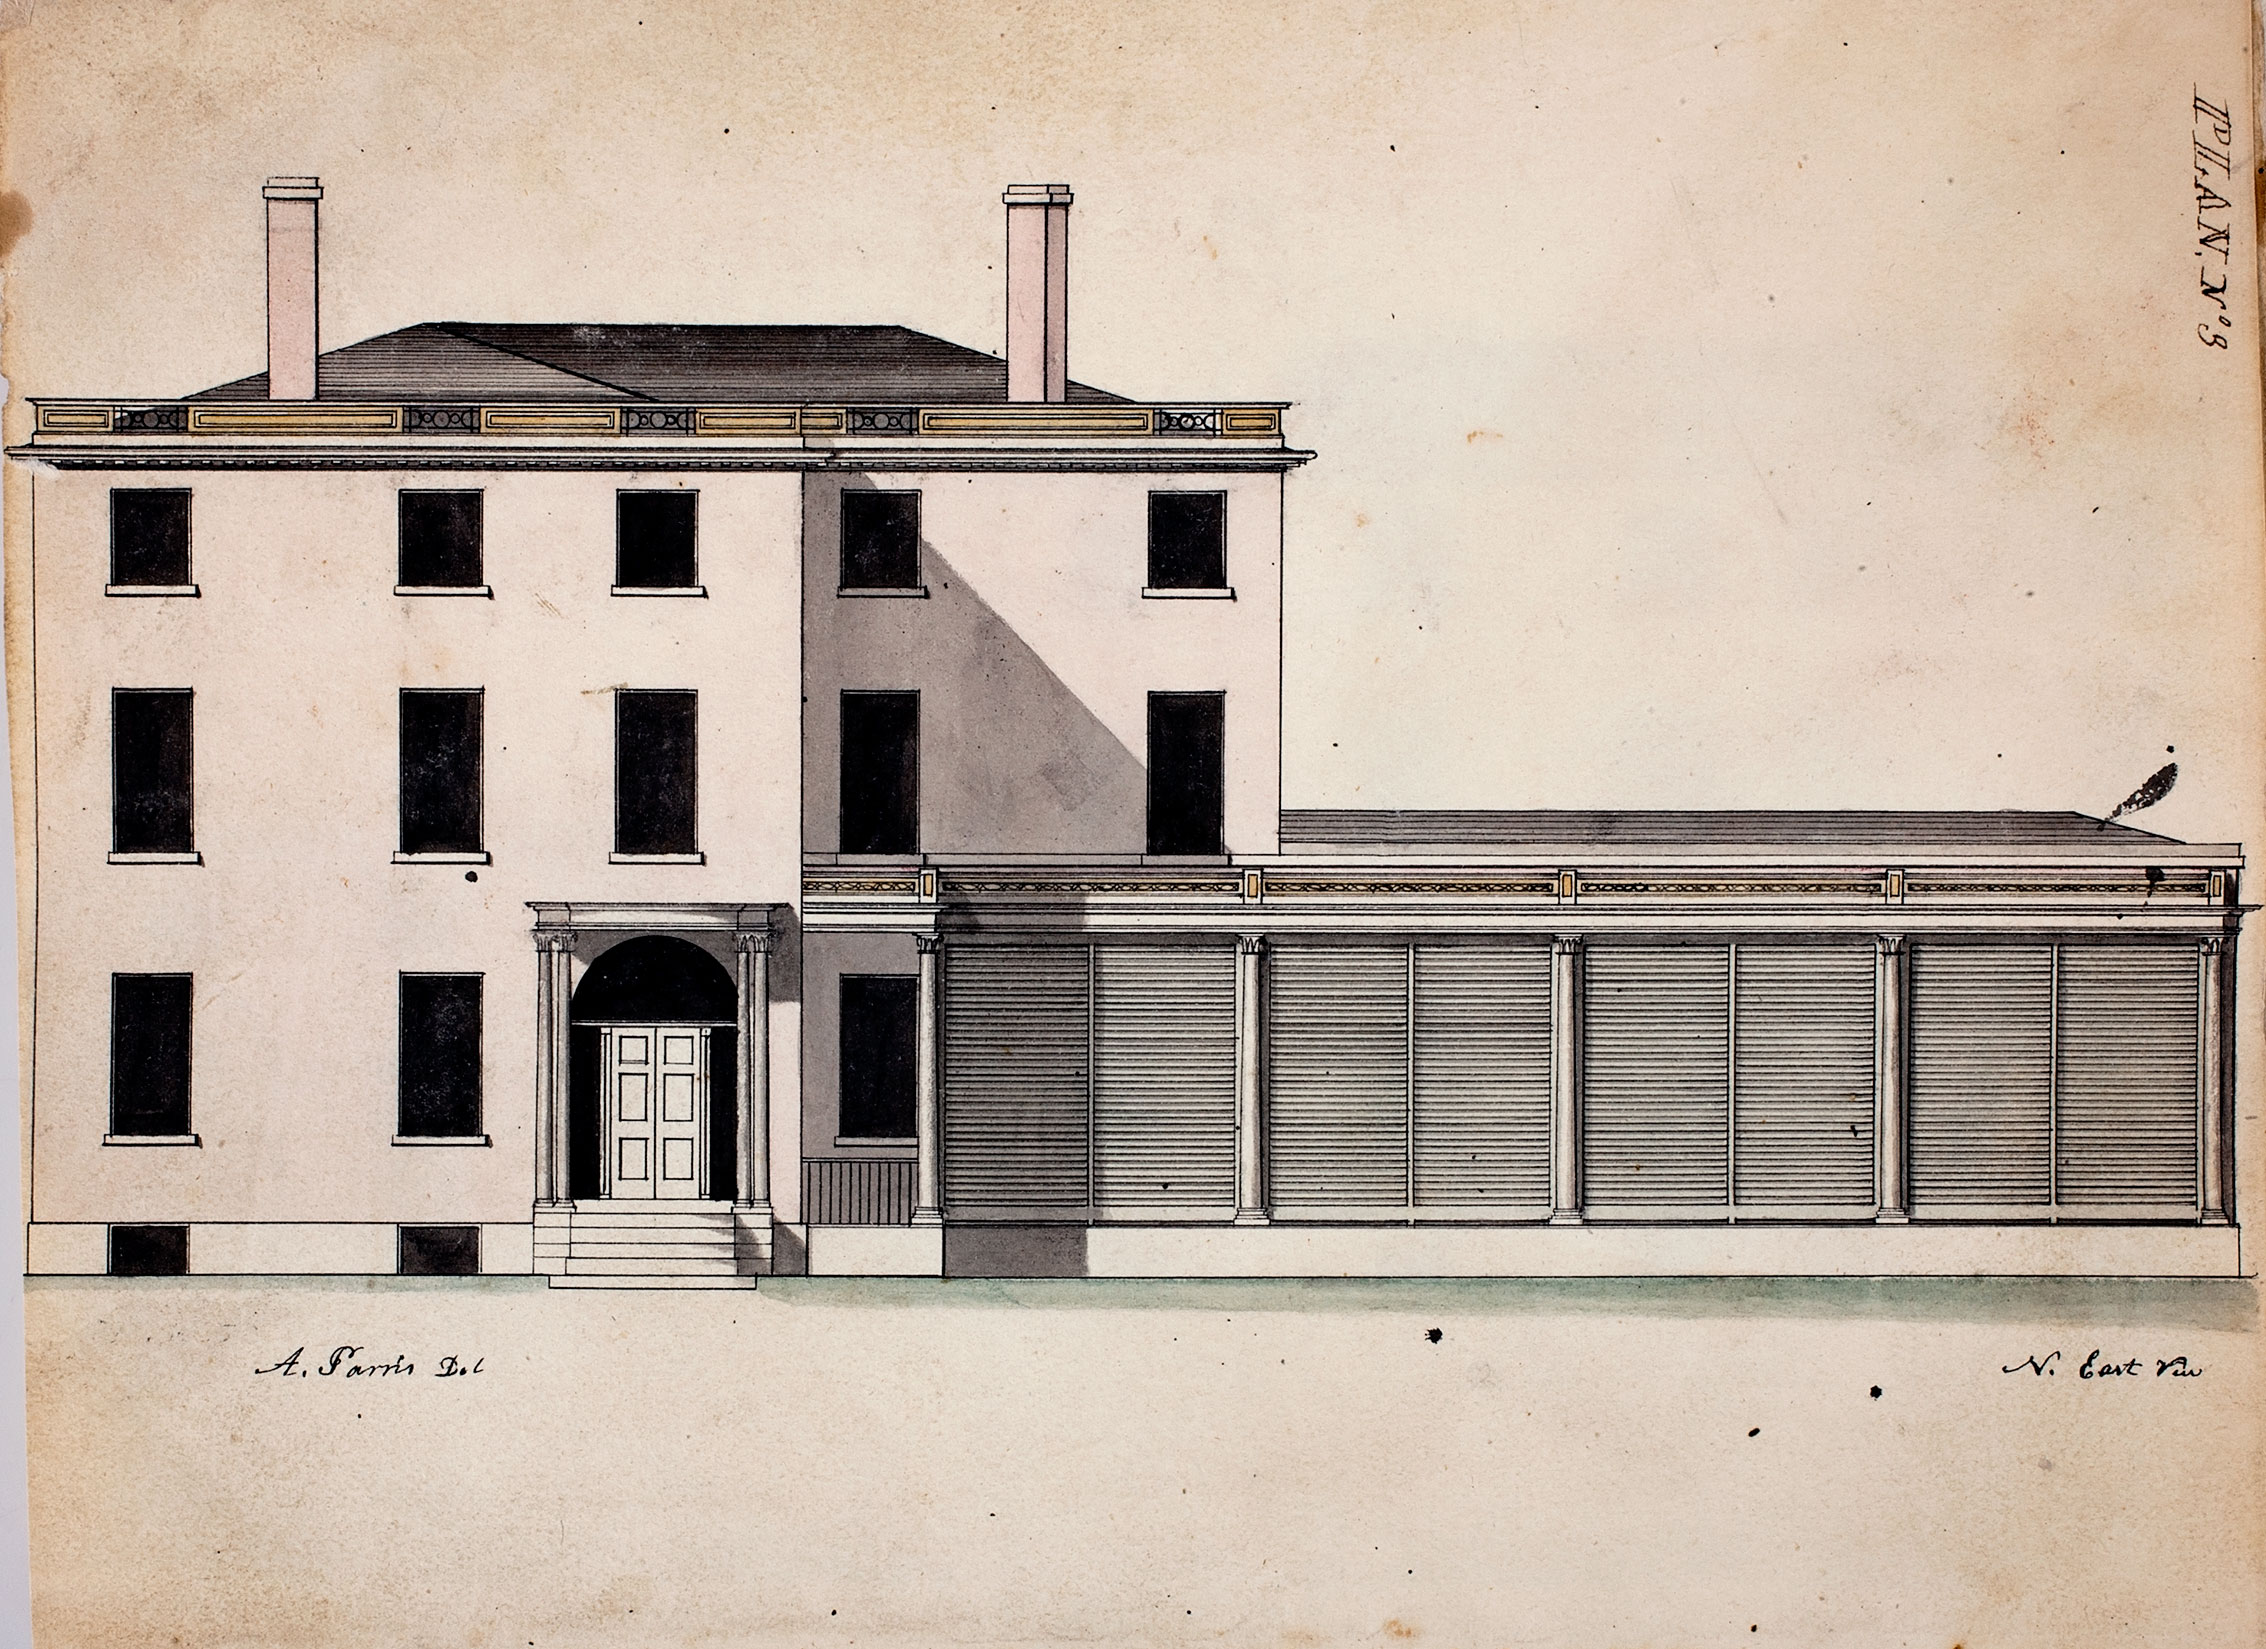 Alexander Parris, Edward Preble House, 1805